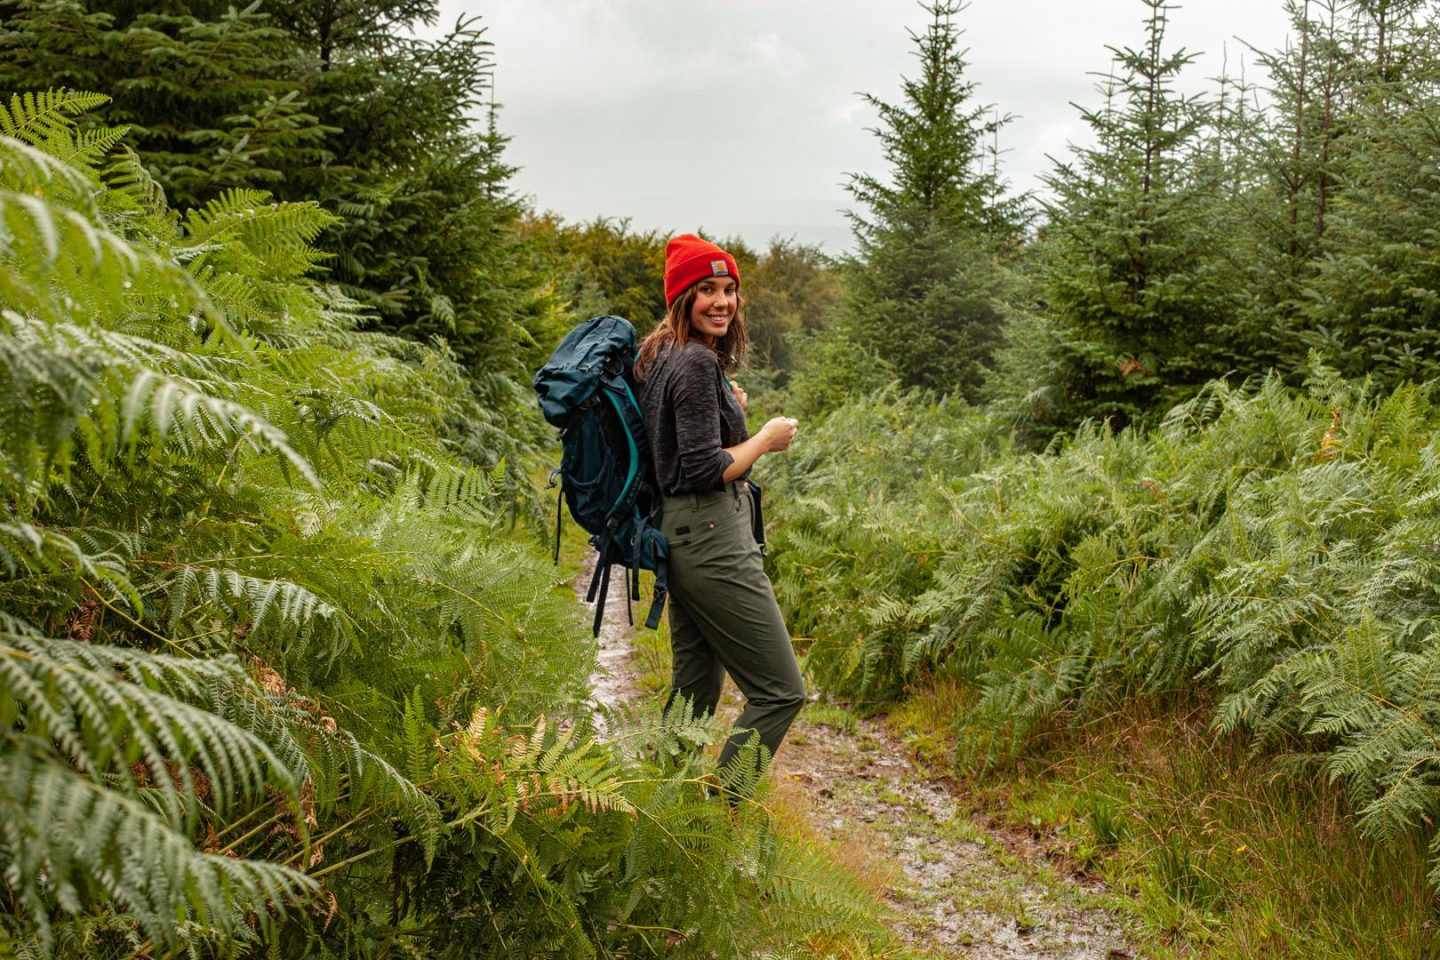 Acai Chinos Review | Acai Slim Fit Hiking Chinos The Girl Outdoors Sian Lewis